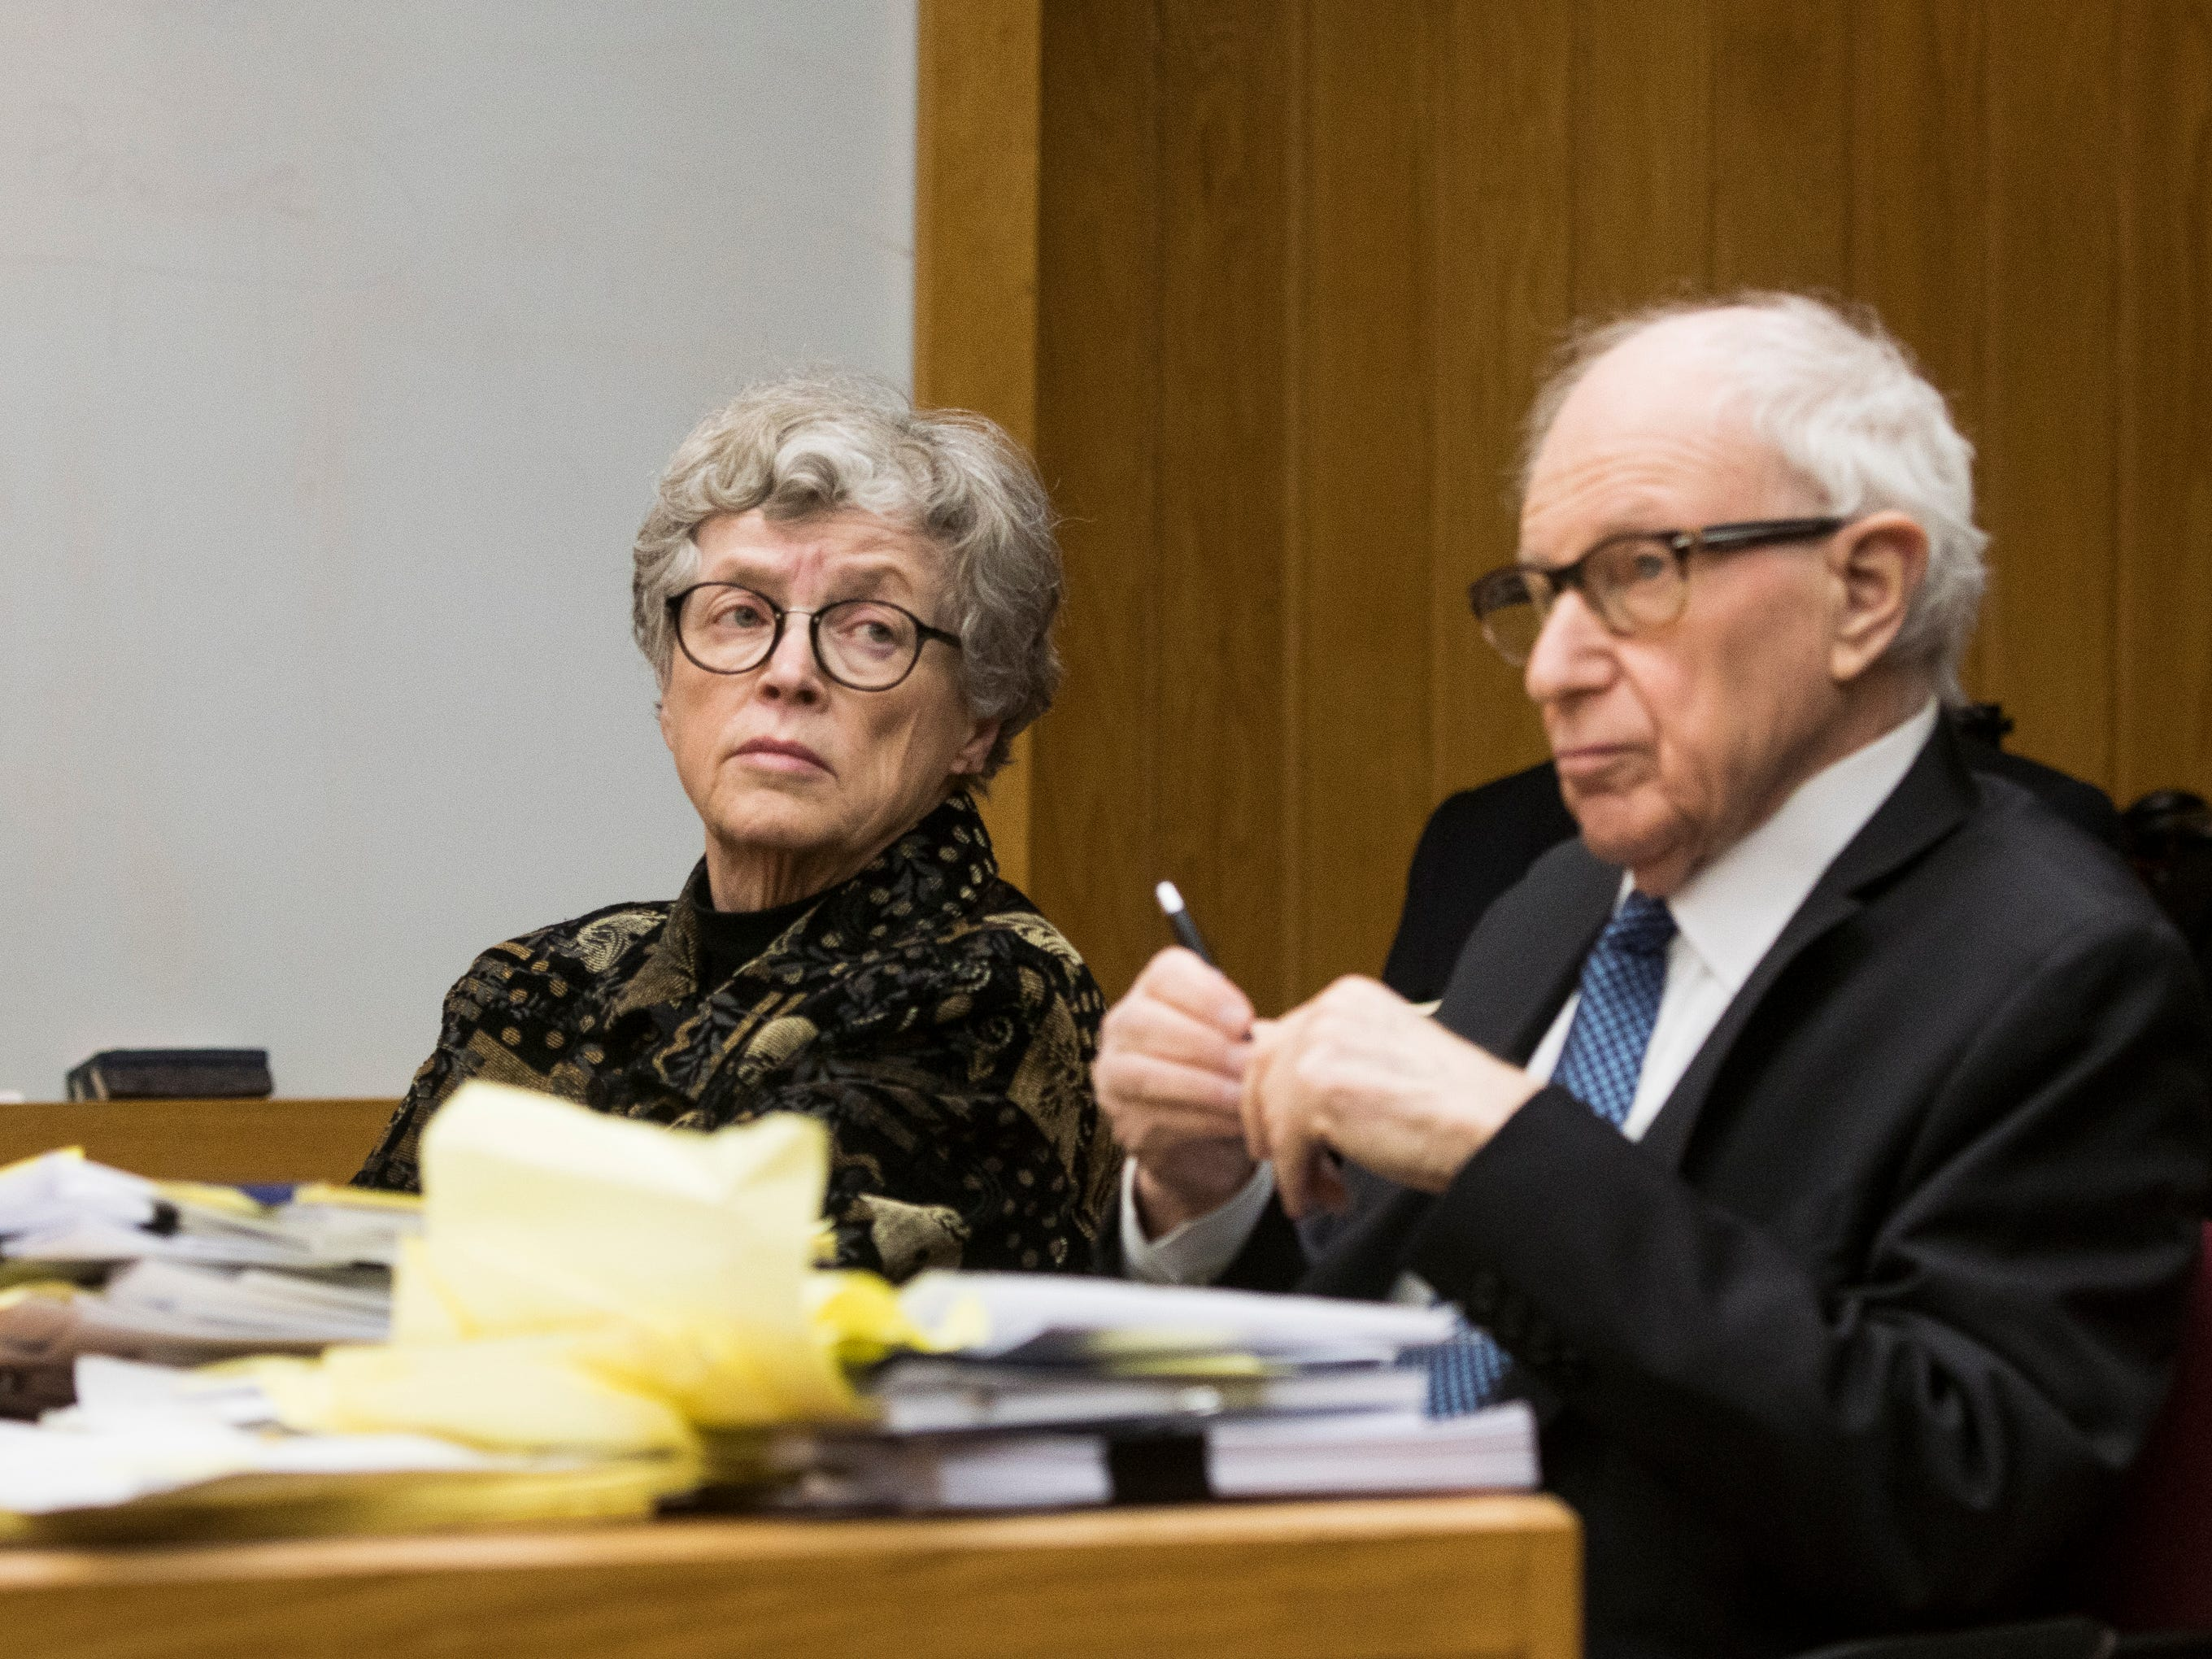 Former MSU President Lou Anna Simon appears in District Judge Julie Reincke's courtroom, Tuesday, Feb. 5, 2019, with her attorney Mayer Morganroth in Charlotte, Michigan for the first day of her preliminary hearing.  Simon faces four charges, including two felonies, because investigators say she lied to police about when she knew about a sexual assault report against former MSU doctor Larry Nassar.  